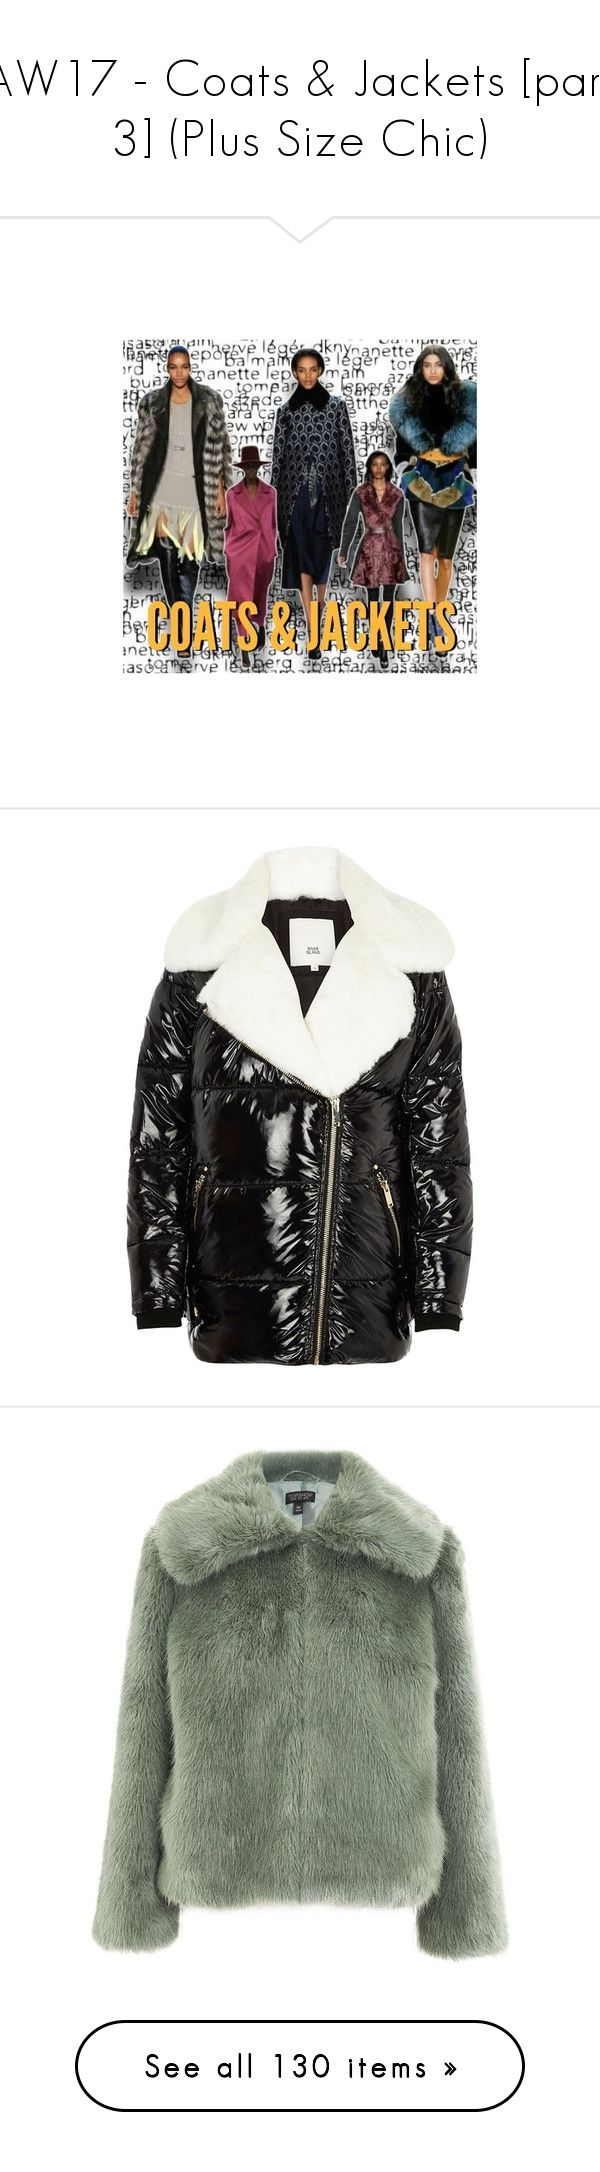 """""""AW17 - Coats & Jackets [part 3] (Plus Size Chic)"""" by foolsuk ❤ liked on Polyvore featuring outerwear, jackets, black, coats / jackets, women, aviator jacket, faux fur collar jacket, tall jackets, faux fur aviator jacket and faux fur jacket"""